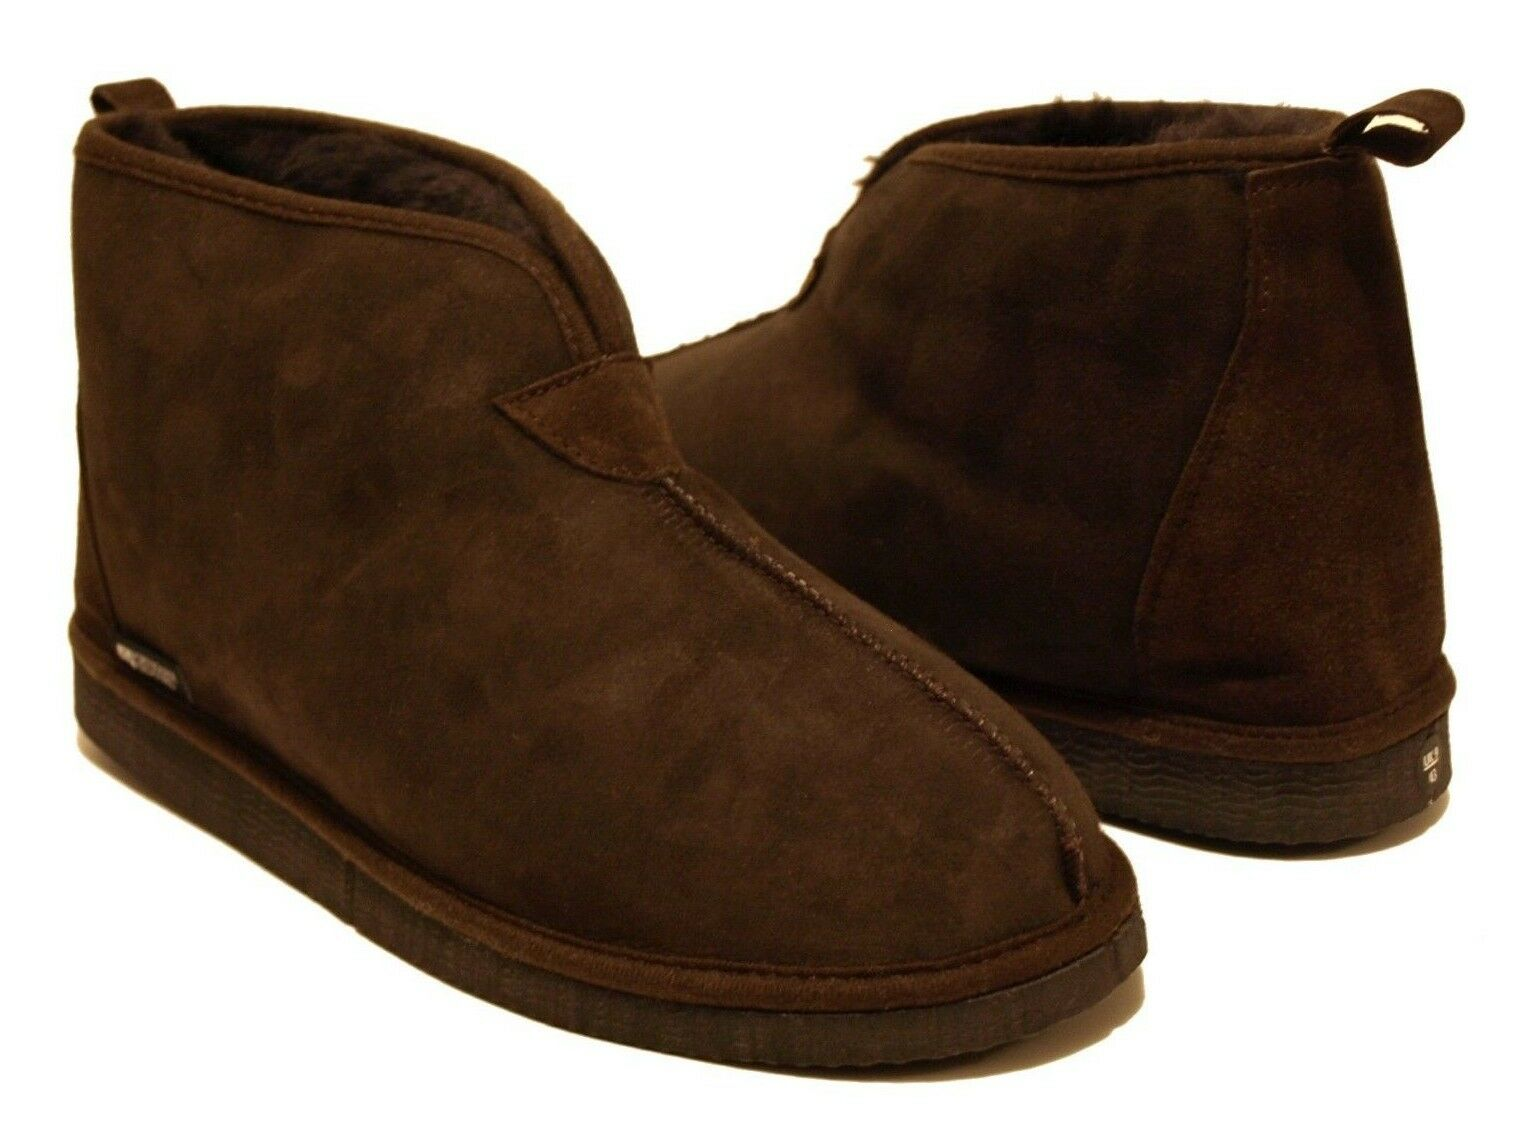 Mens Womens Womens Mens Merino Brown Sheepskin Slippers Ankle Boots Vegetable Tanned 4376d1